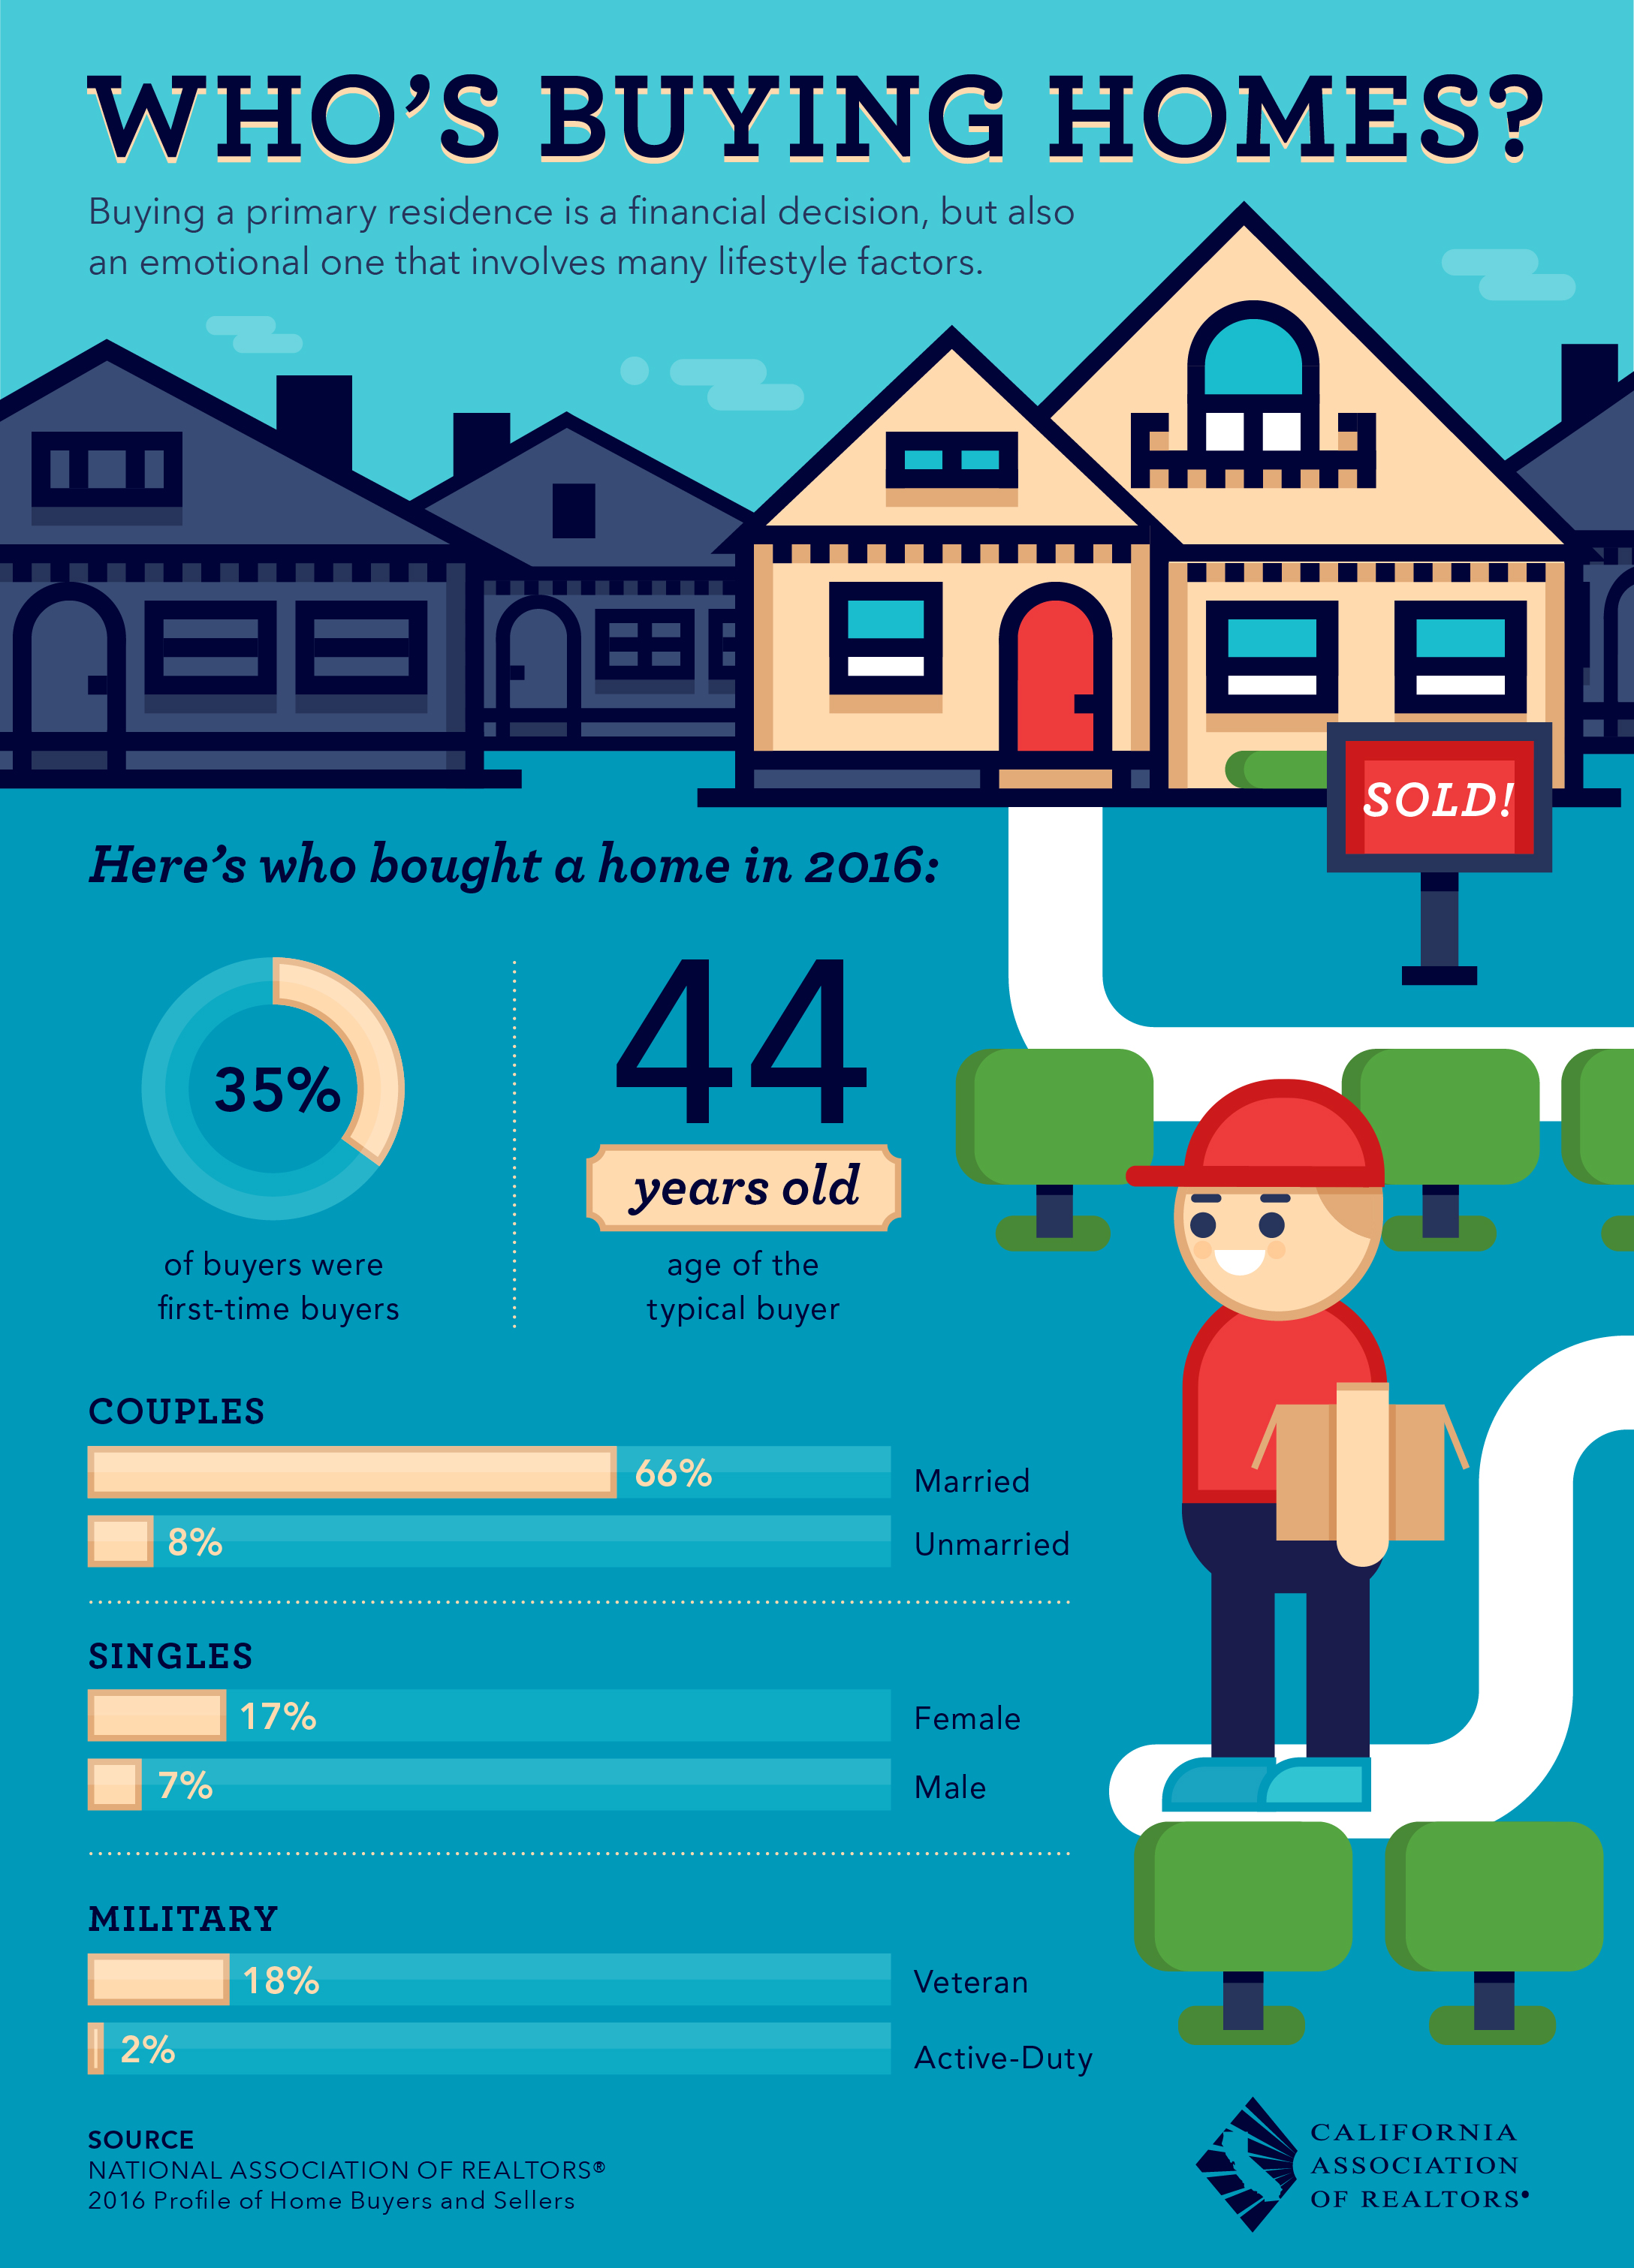 Who Bought Homes In 2016